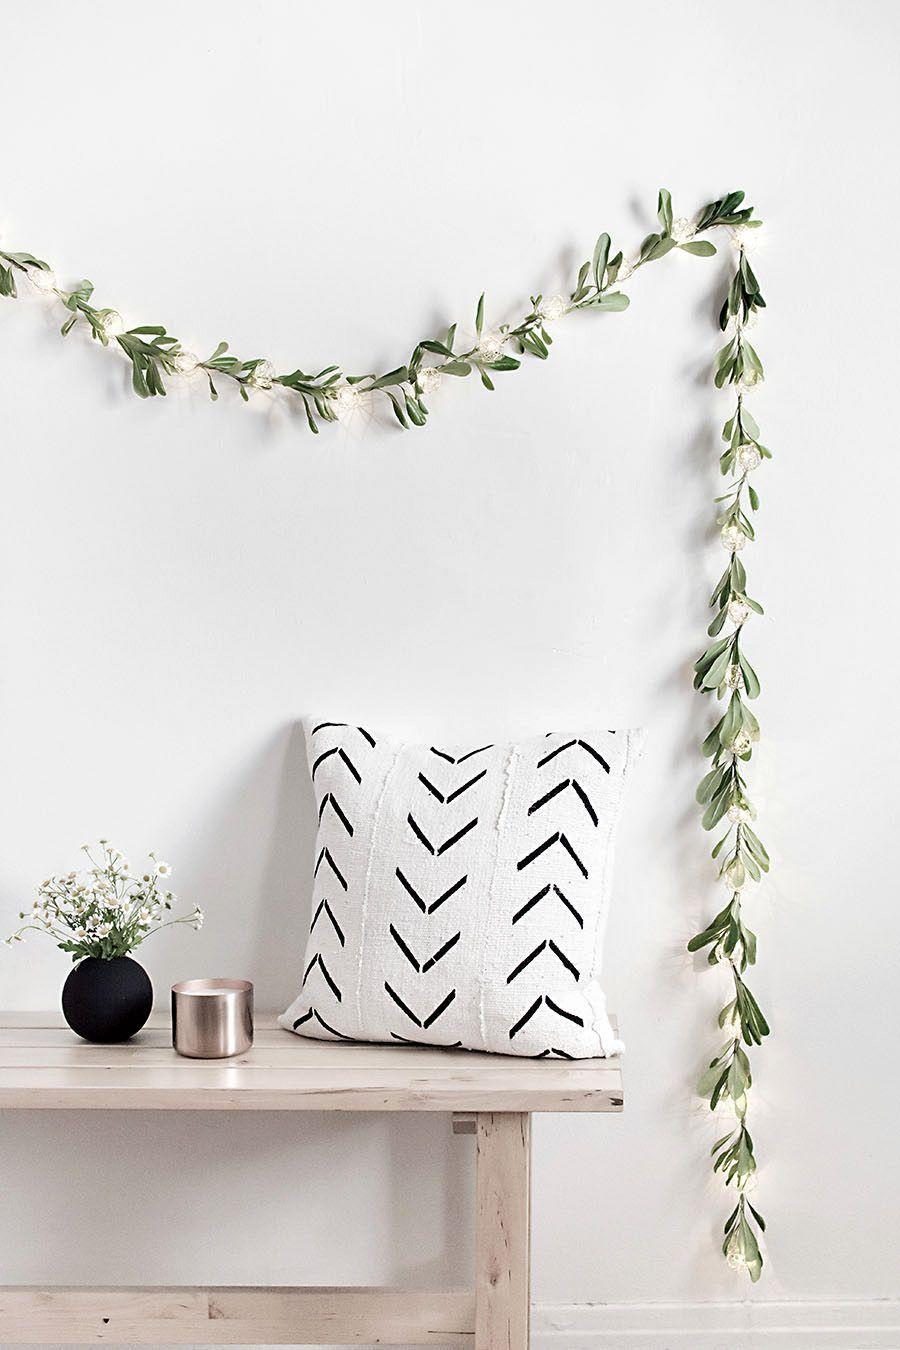 """<p>Make your average strand of cafe lights stand out even when the lights aren't on—all you need is a little live greenery. </p><p><a href=""""https://www.homeyohmy.com/diy-string-lights-garland/"""" rel=""""nofollow noopener"""" target=""""_blank"""" data-ylk=""""slk:Get the tutorial."""" class=""""link rapid-noclick-resp"""">Get the tutorial.</a></p><p><a class=""""link rapid-noclick-resp"""" href=""""https://www.amazon.com/AmazonBasics-Patio-Lights-White-50/dp/B073WFL878?tag=syn-yahoo-20&ascsubtag=%5Bartid%7C10072.g.37499128%5Bsrc%7Cyahoo-us"""" rel=""""nofollow noopener"""" target=""""_blank"""" data-ylk=""""slk:SHOP STRING LIGHTS"""">SHOP STRING LIGHTS</a></p>"""